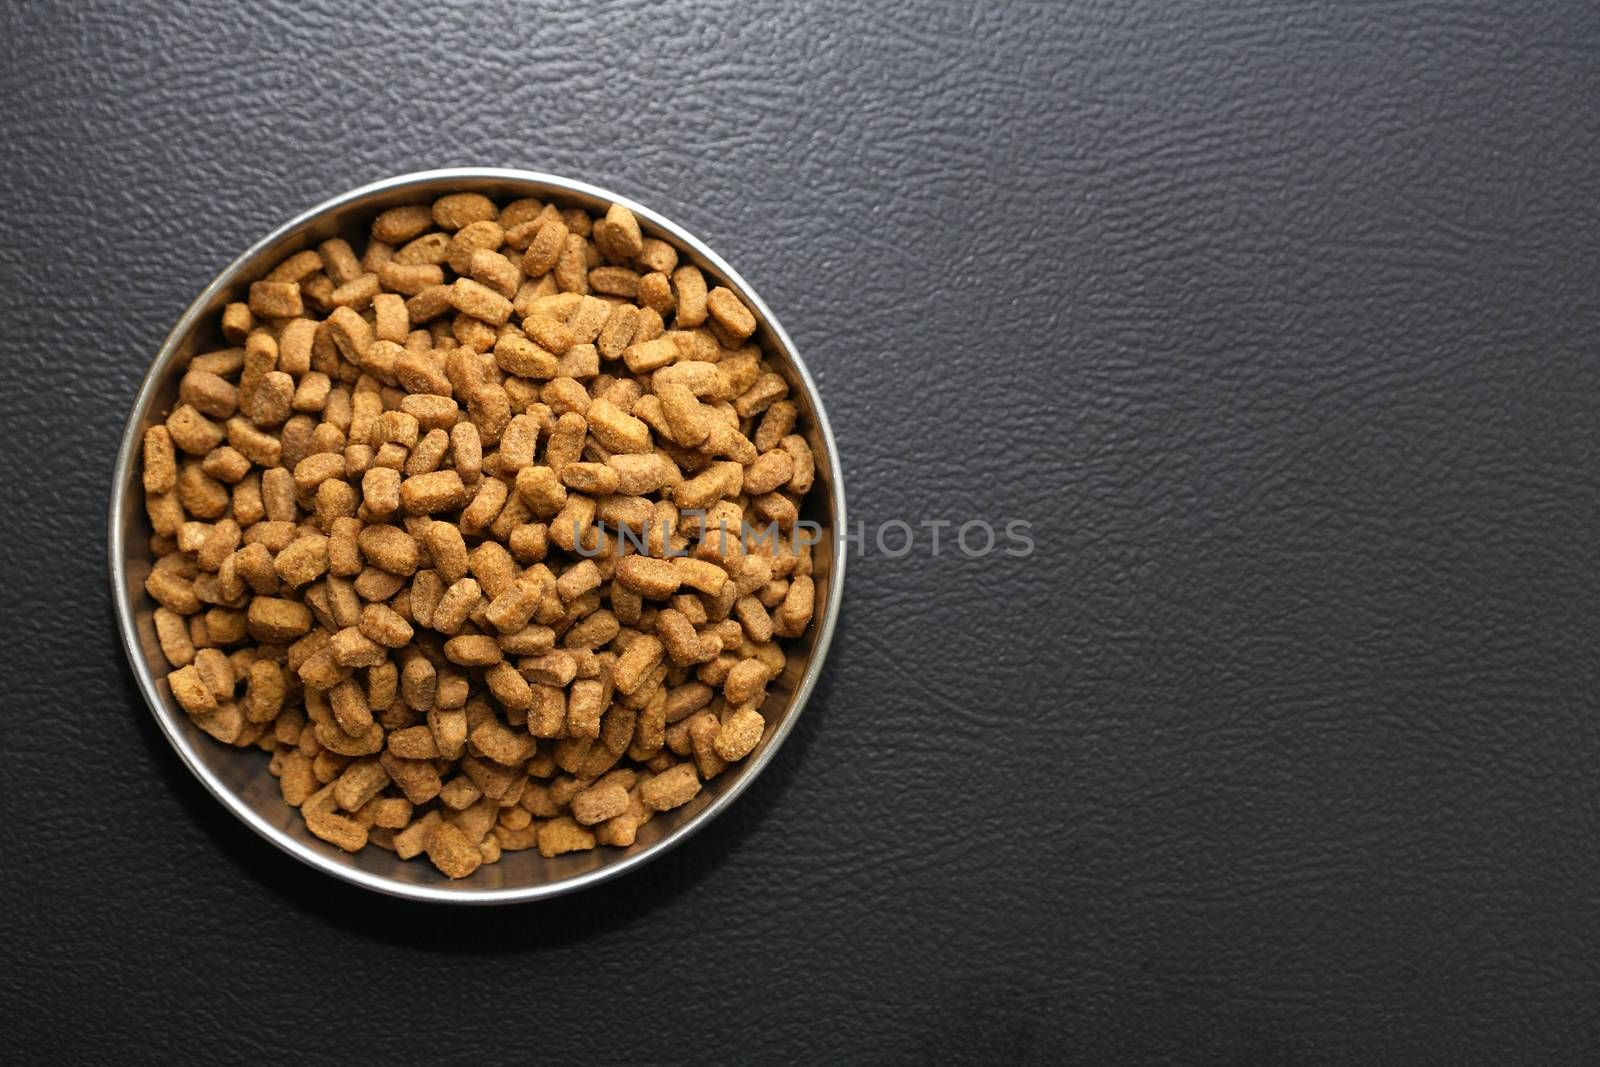 Bowl with dry food for domestic animals on black ceramic floor